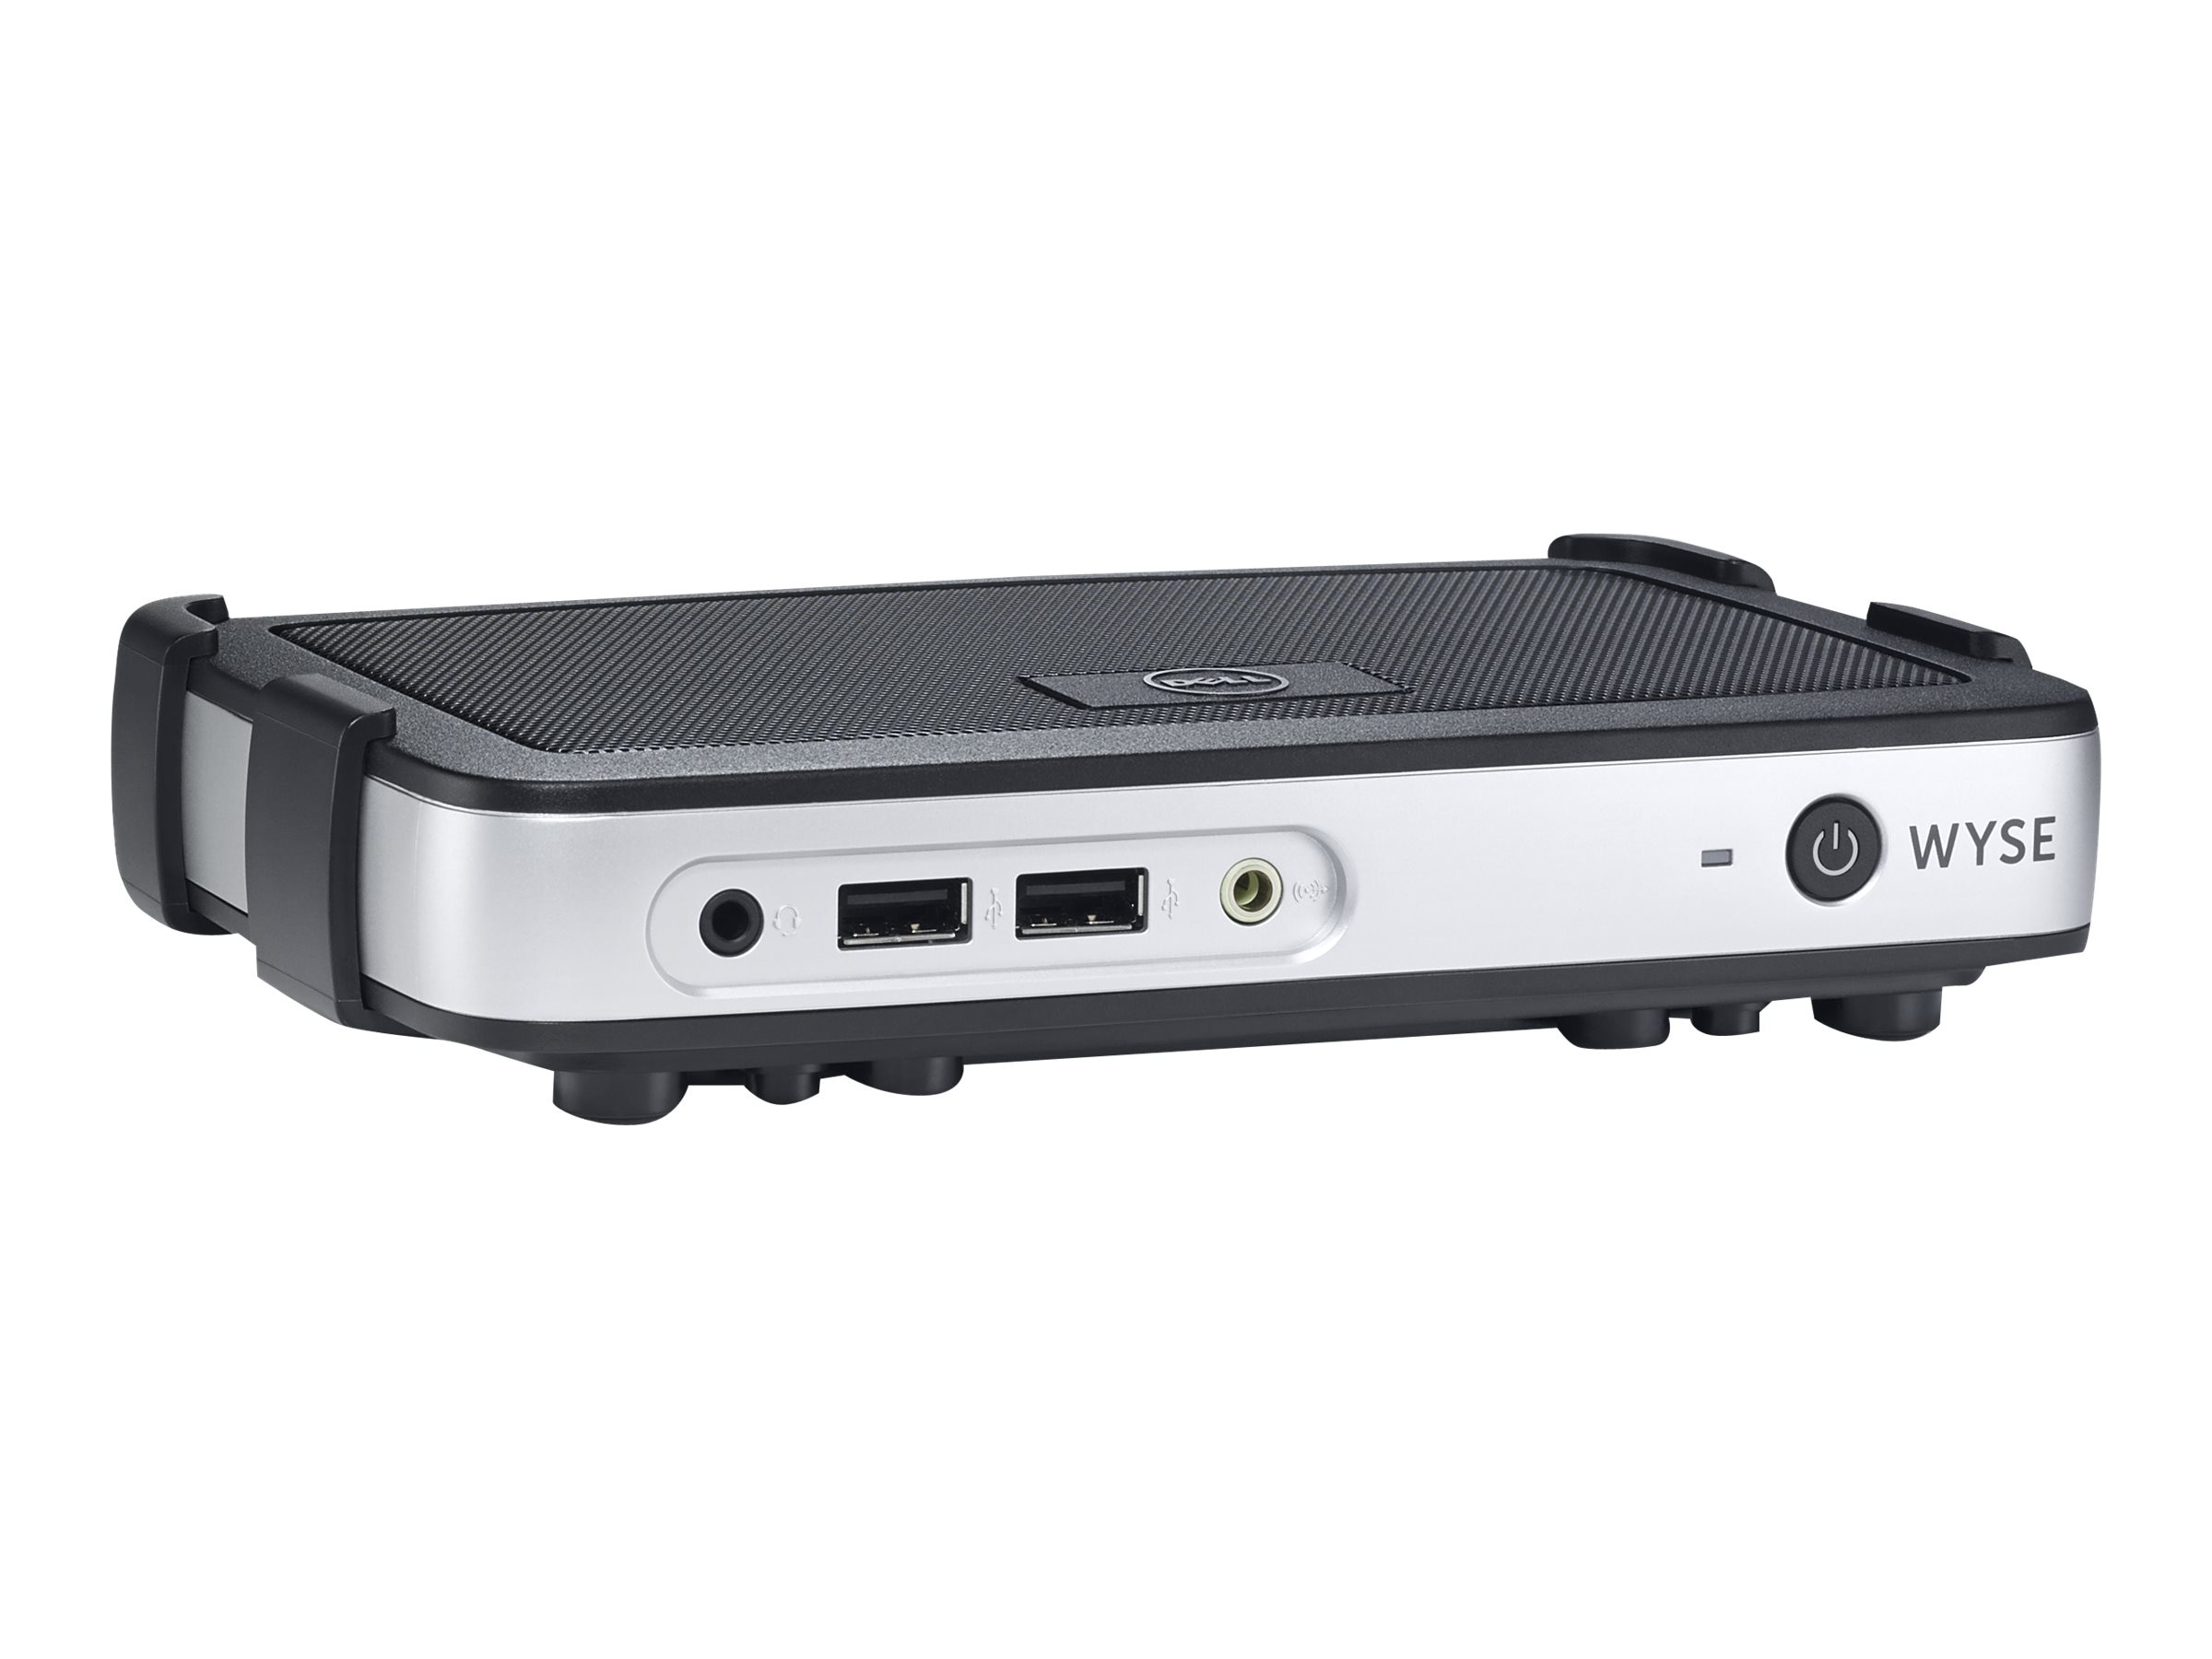 Wyse 5030 P25 Client 512MR 32MF PCOIP, 4NH9X, 31008339, Thin Client Hardware